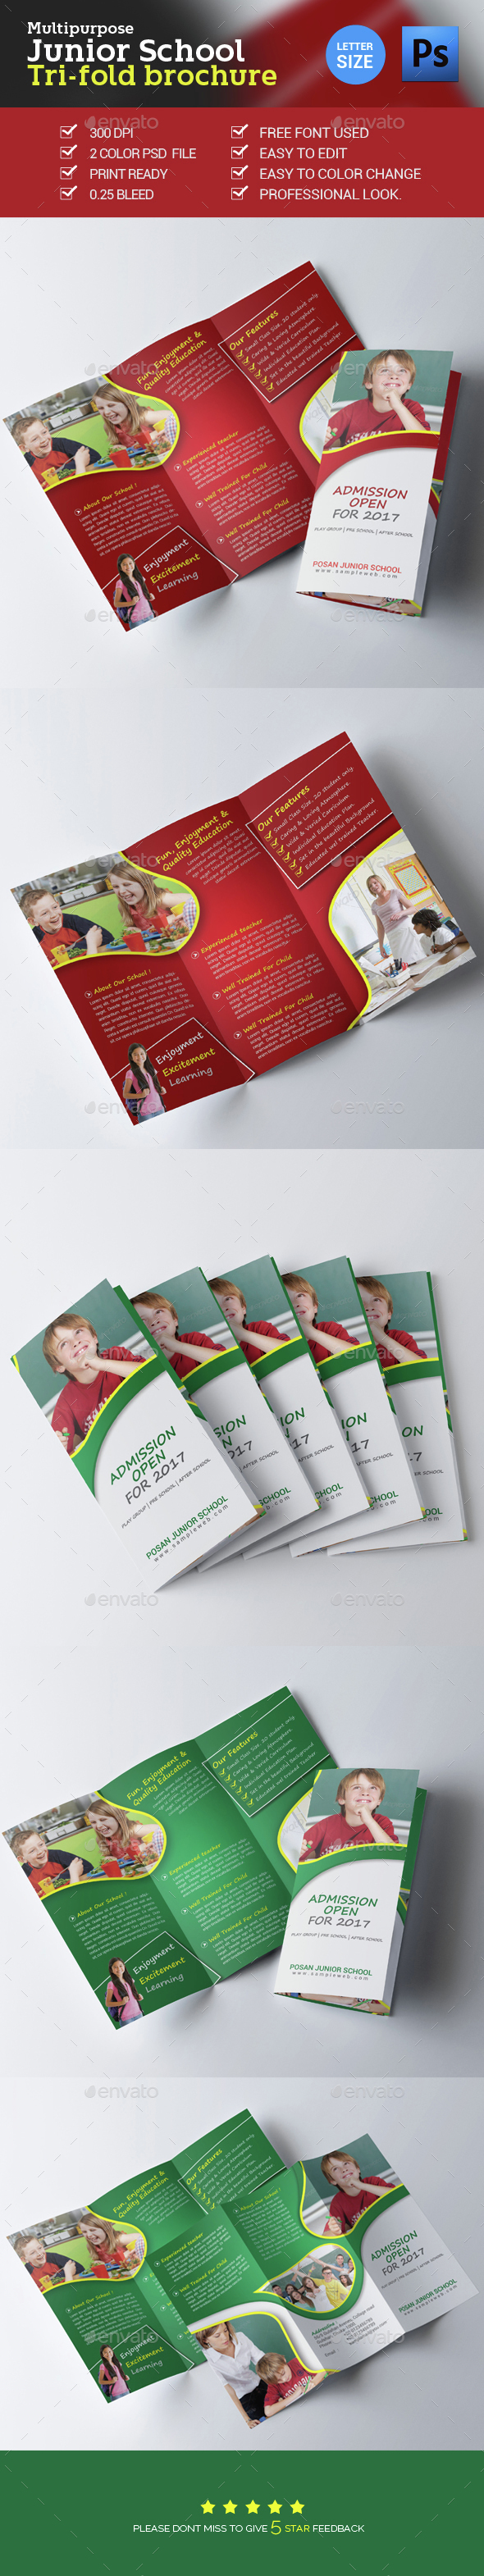 Junior School Admission Trifold Brochure - Brochures Print Templates